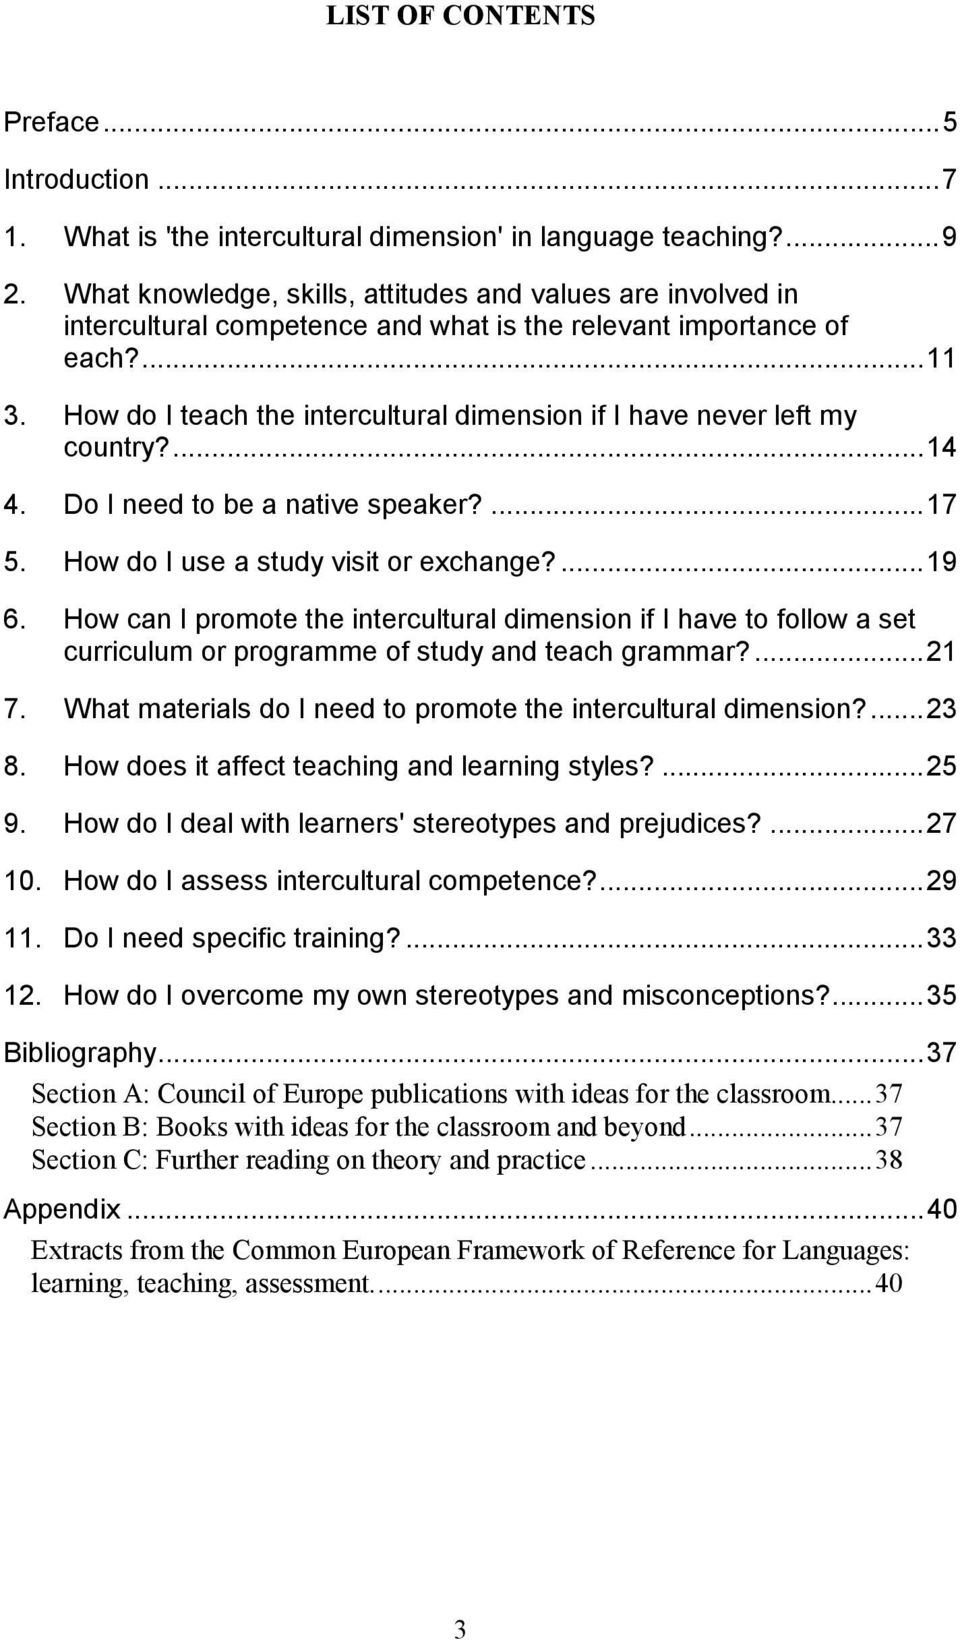 How do I teach the intercultural dimension if I have never left my country?...14 4. Do I need to be a native speaker?...17 5. How do I use a study visit or exchange?...19 6.